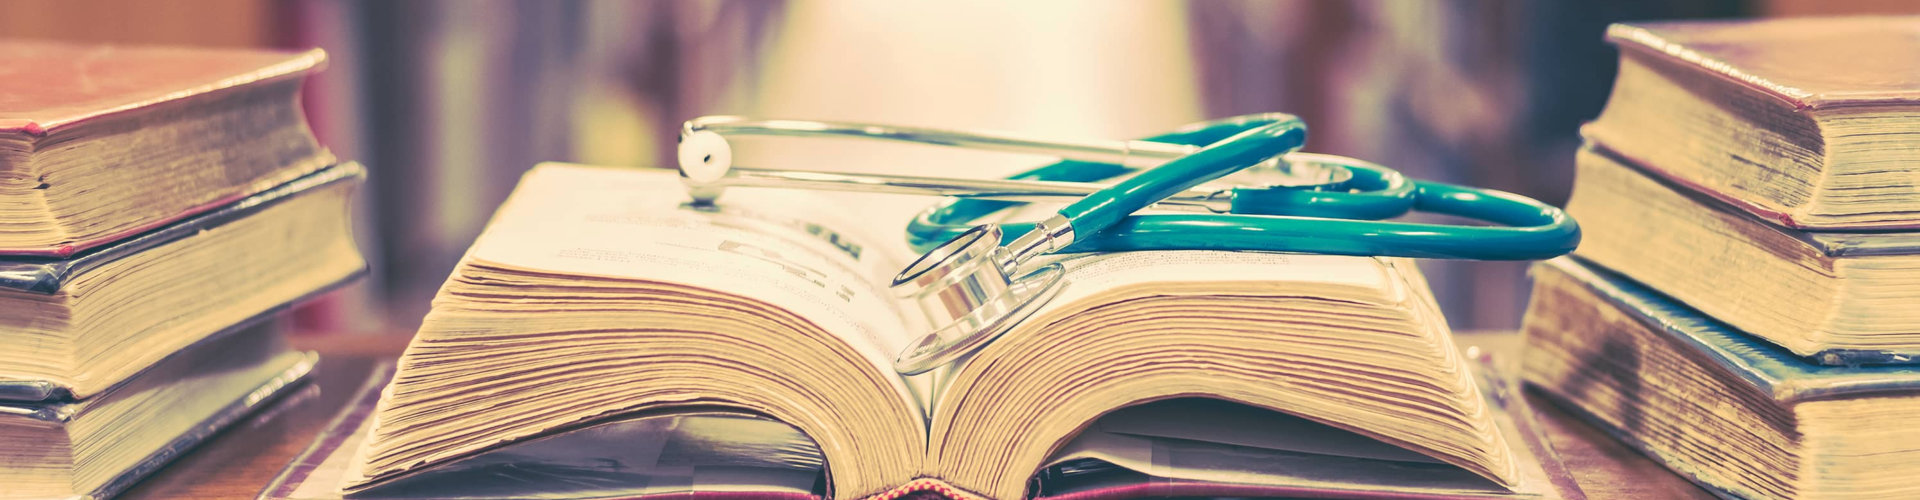 stethoscope on top of a book